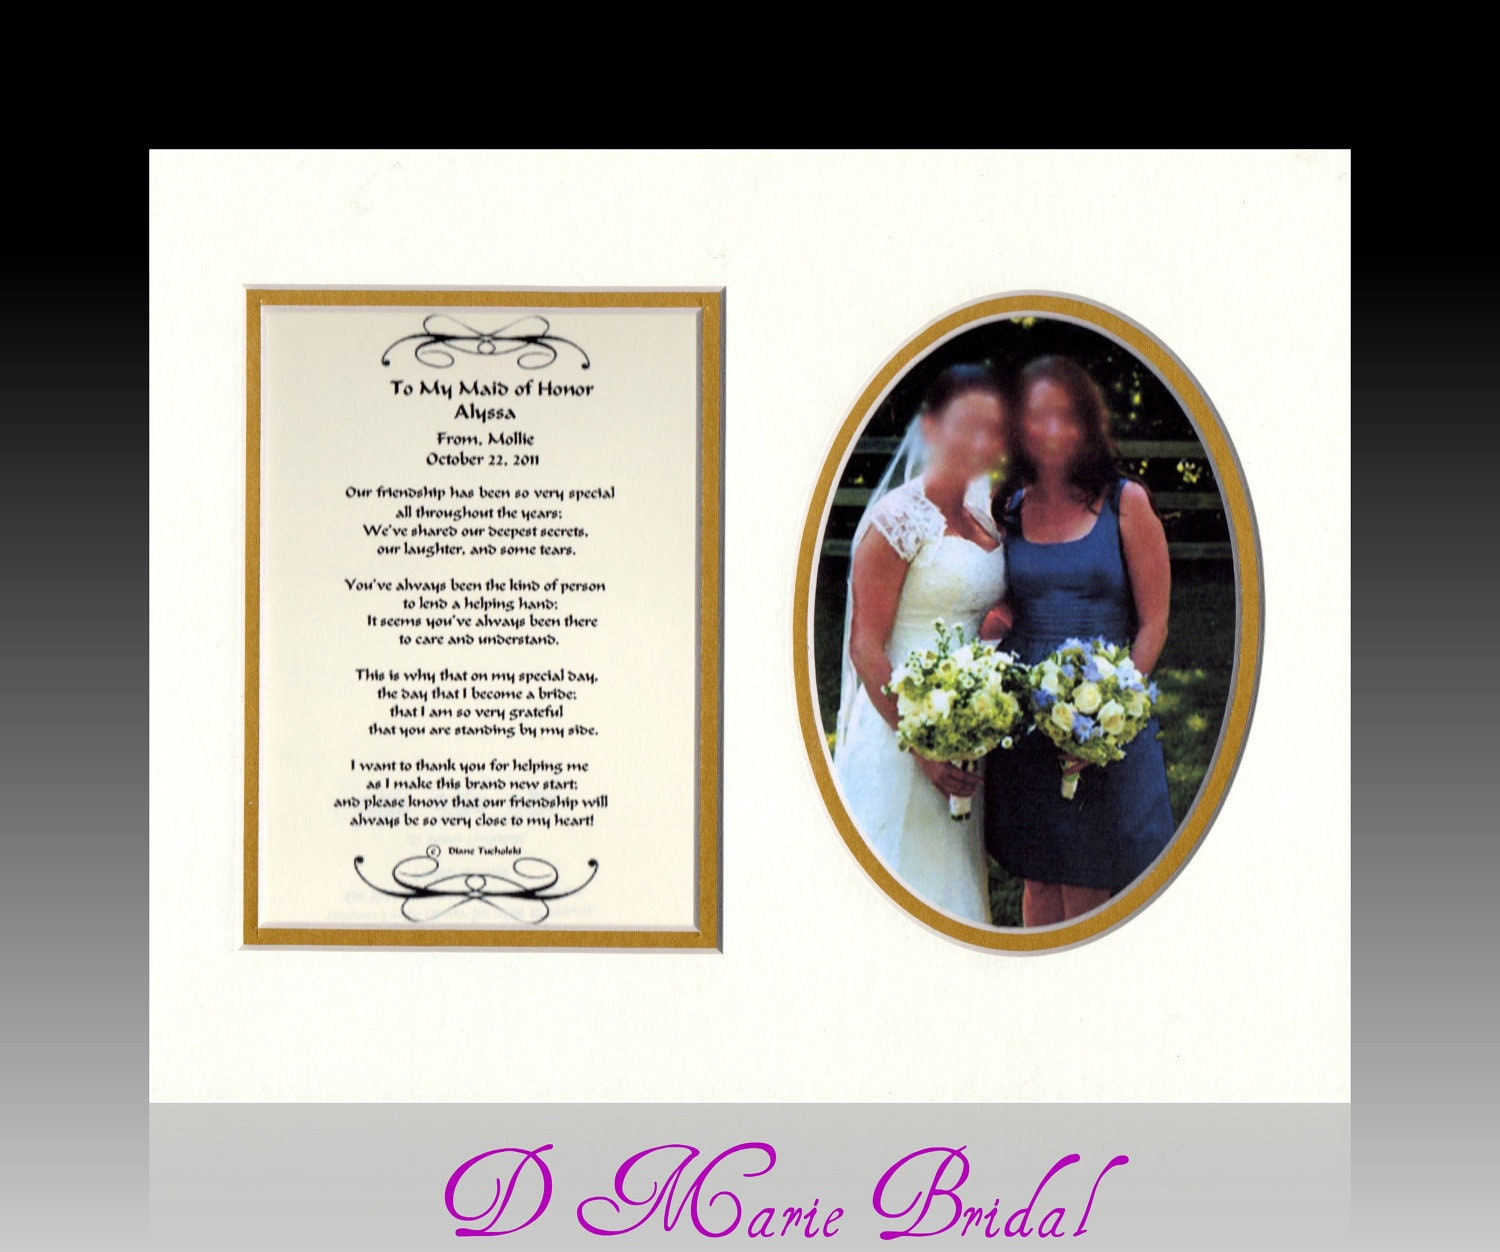 Wedding Gifts From Maid Of Honor To Bride: Gift Maid Of Honor Personalized Wedding Gift Bride By